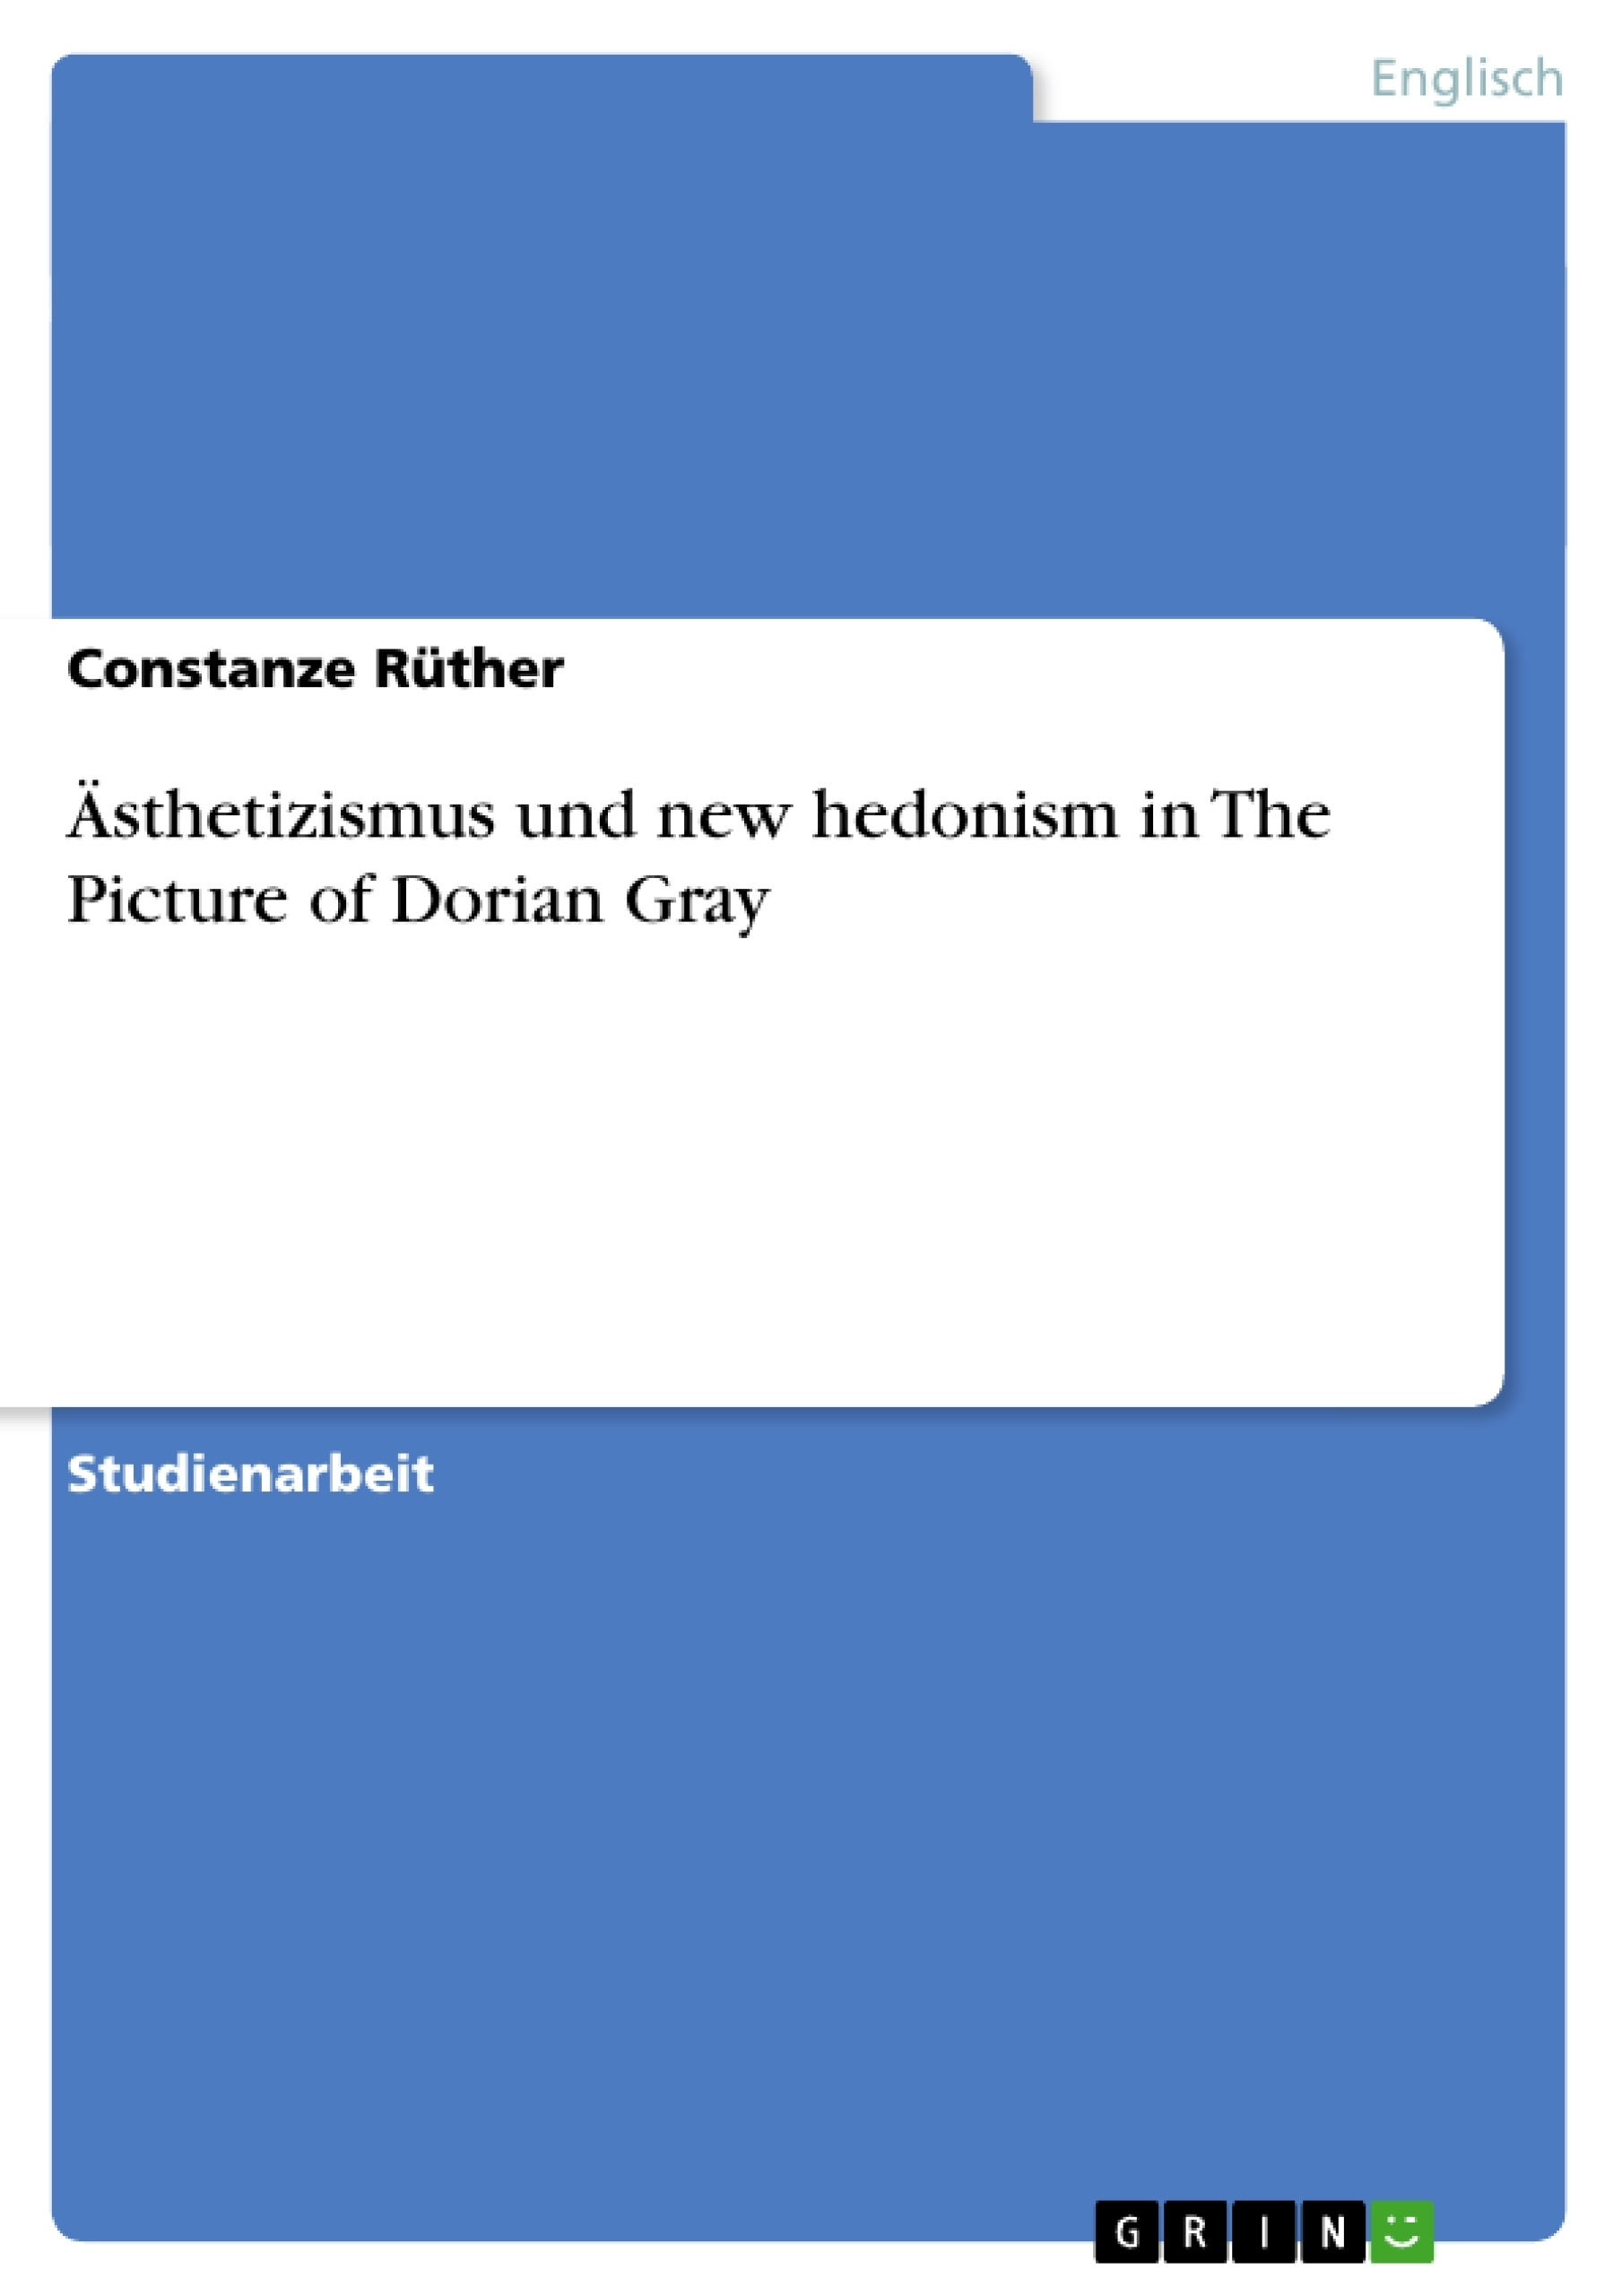 Titel: Ästhetizismus und new hedonism in The Picture of Dorian Gray